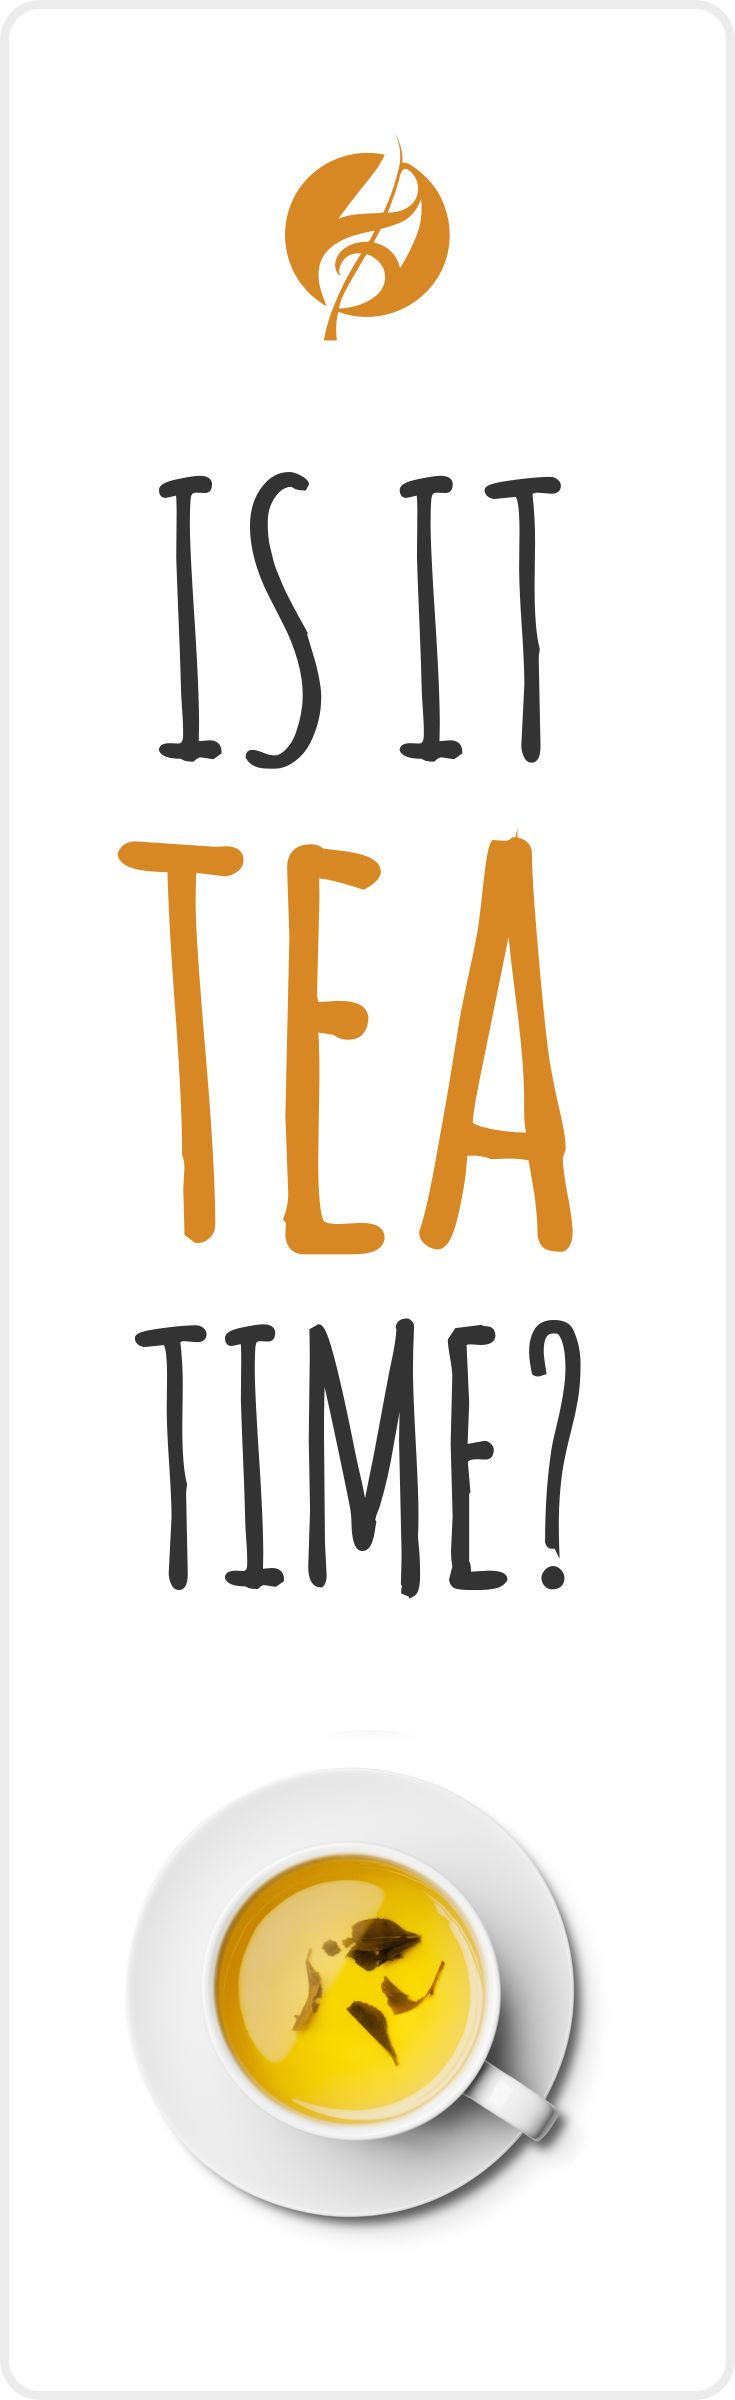 With over 250 artisan teas, all brimming with fresh flavor, there is always something new to try. Please visit us again soon!